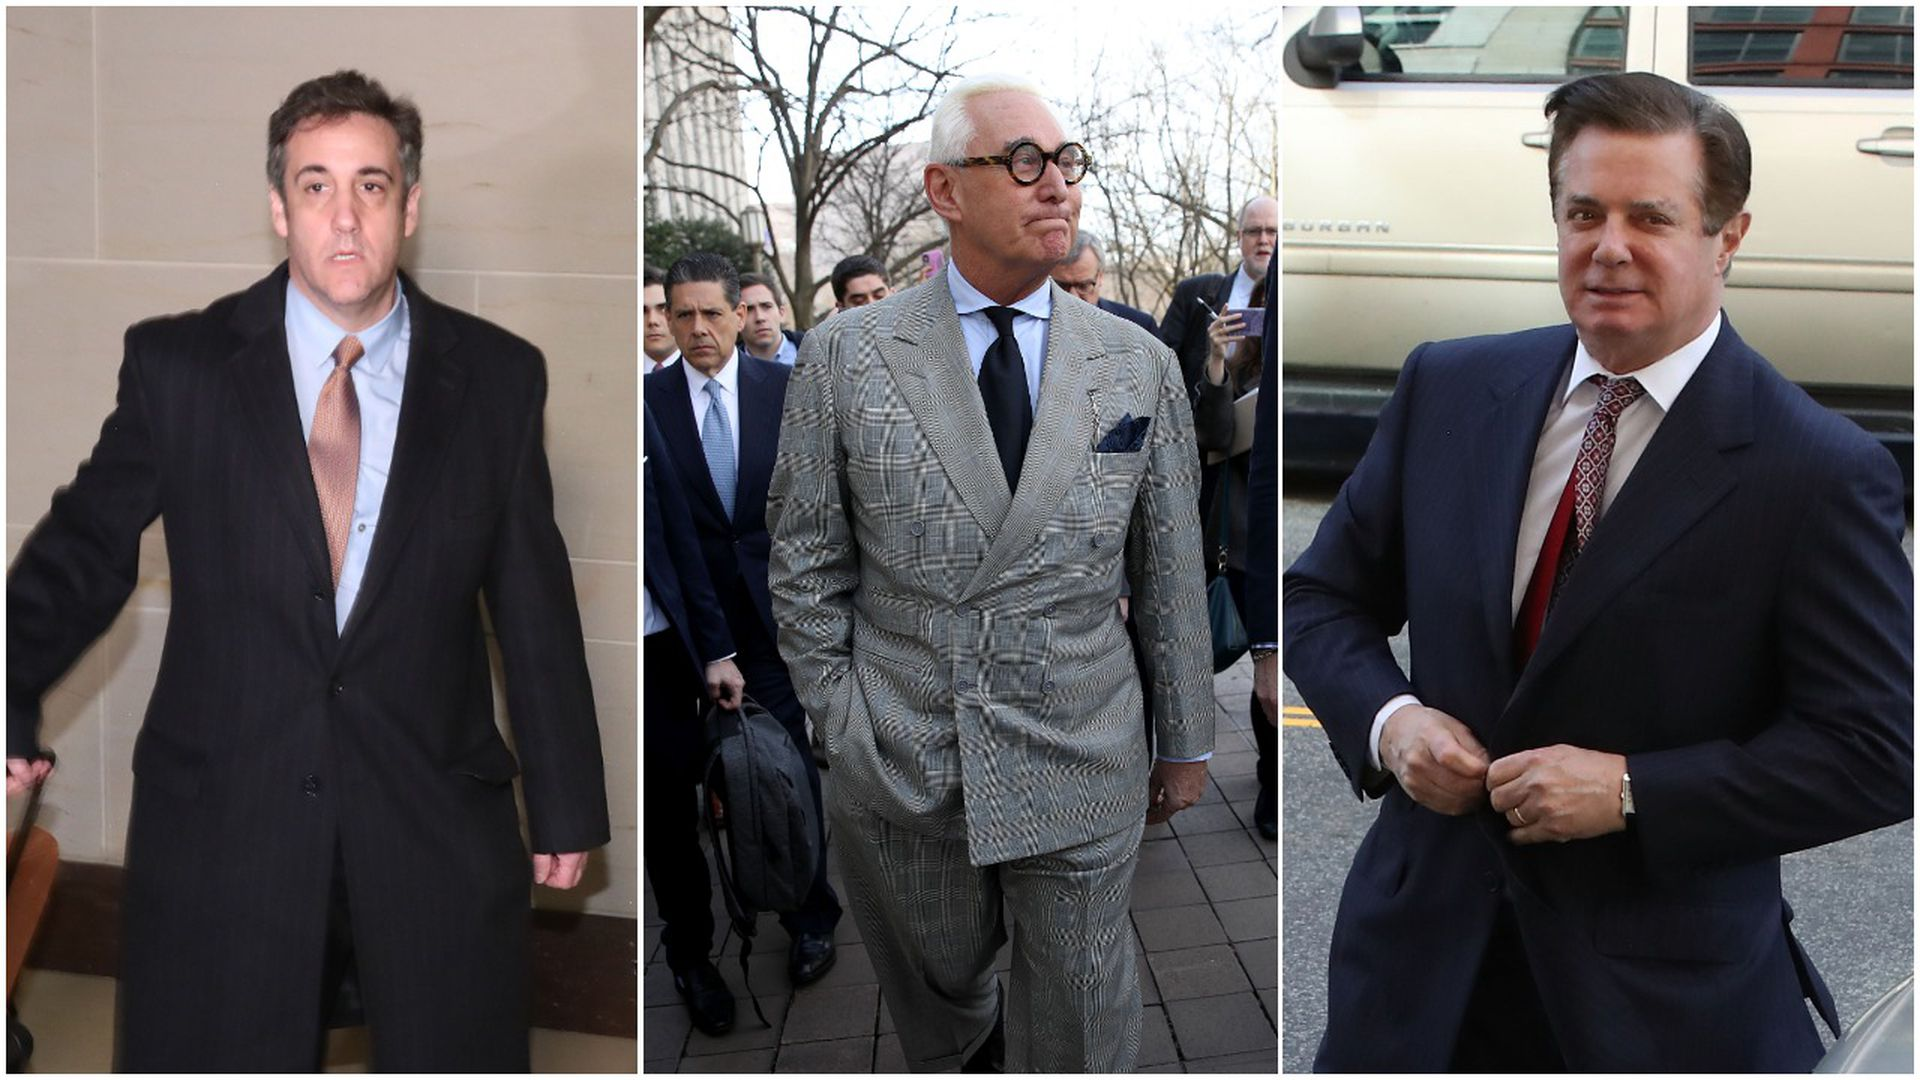 pic stitch of Michael Cohen, Roger Stone and Paul Manafort.